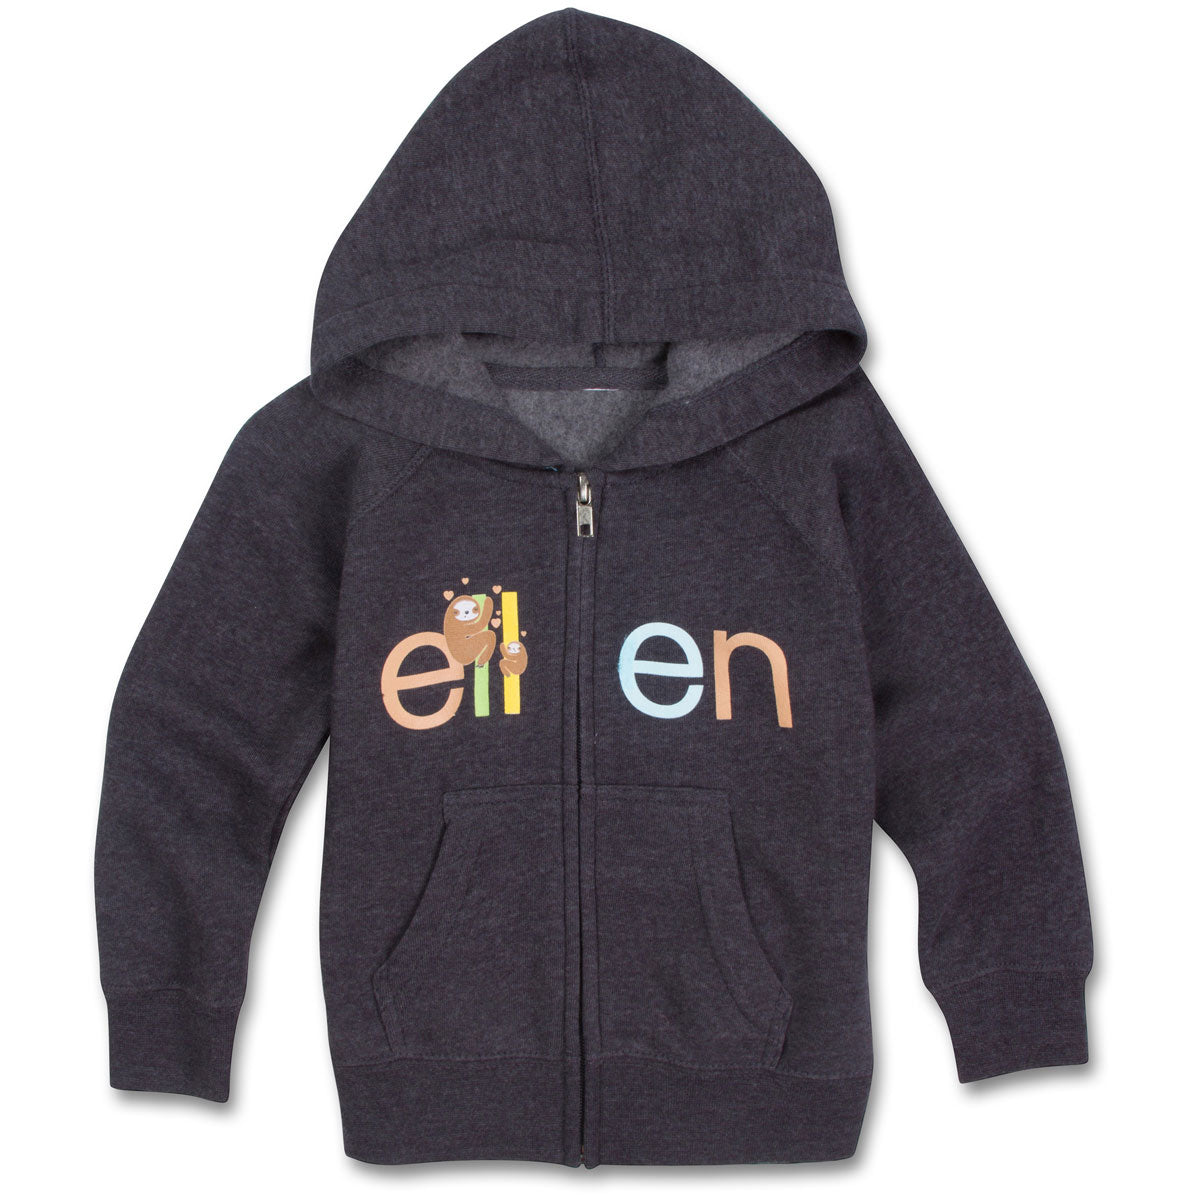 Sloth Toddler Zip Up